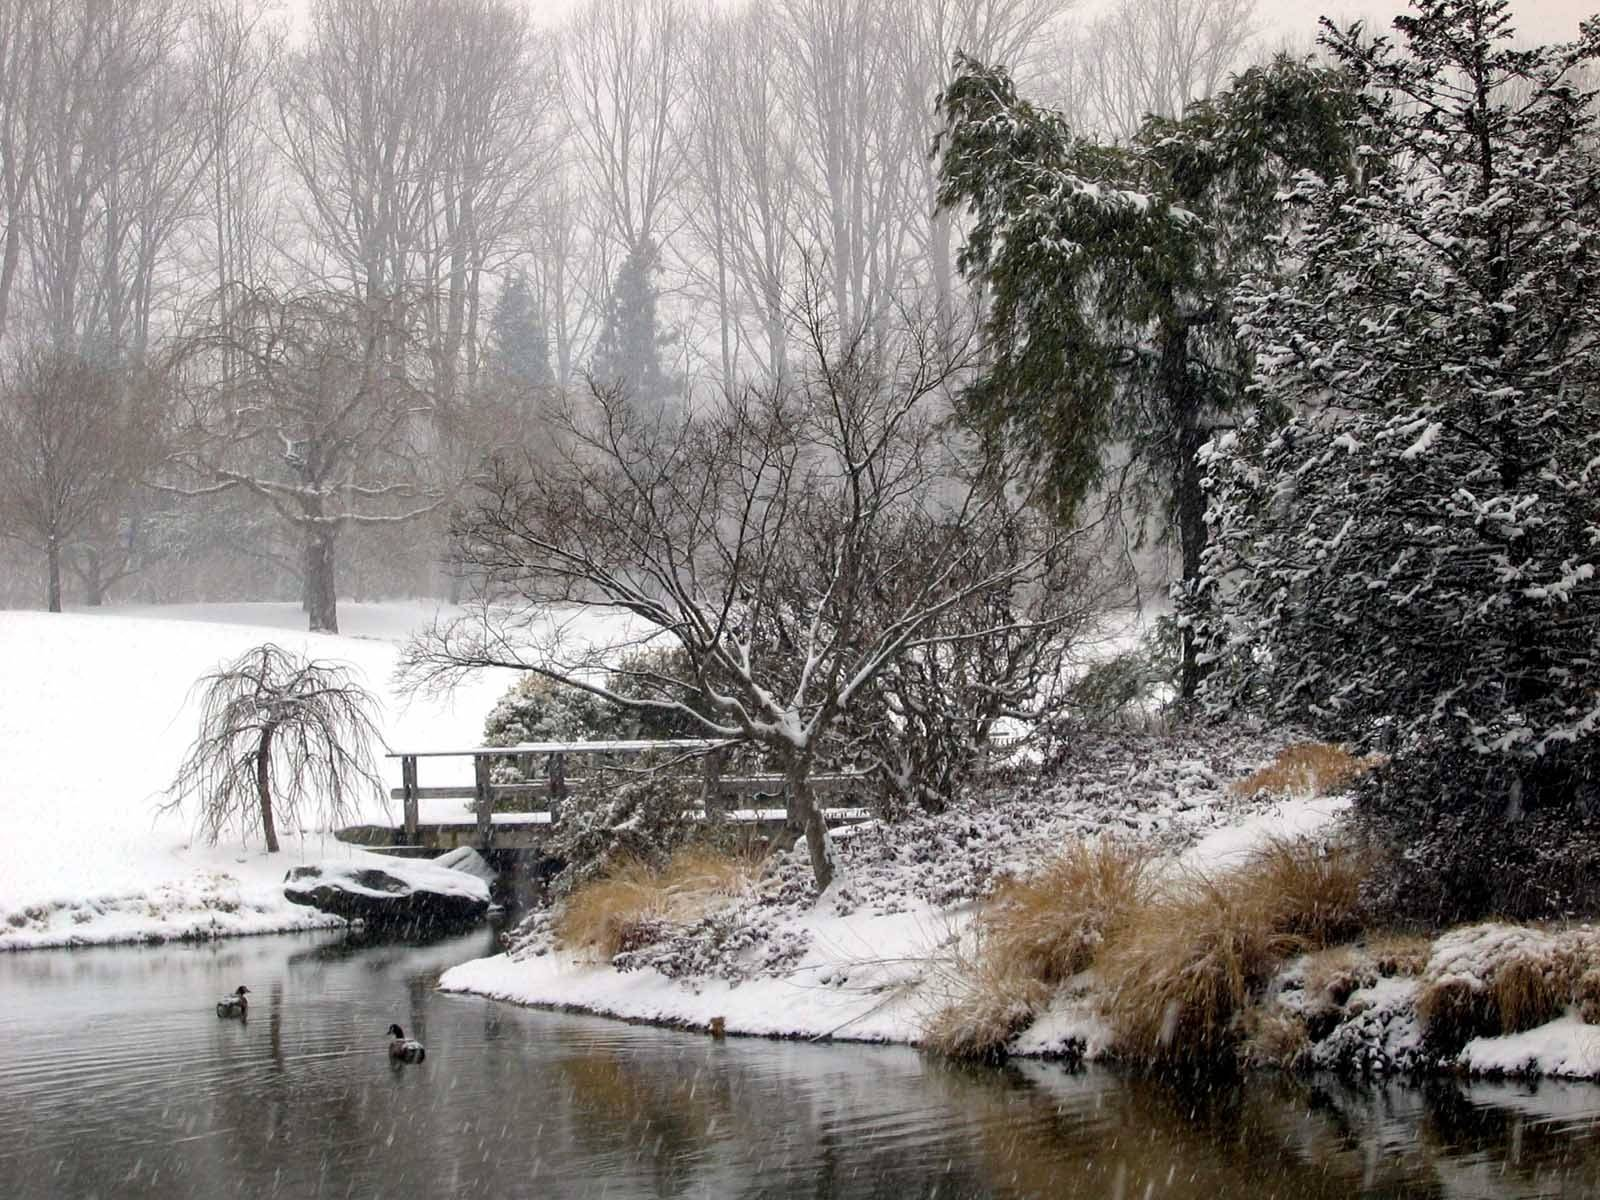 Brookside Gardens Winter Island